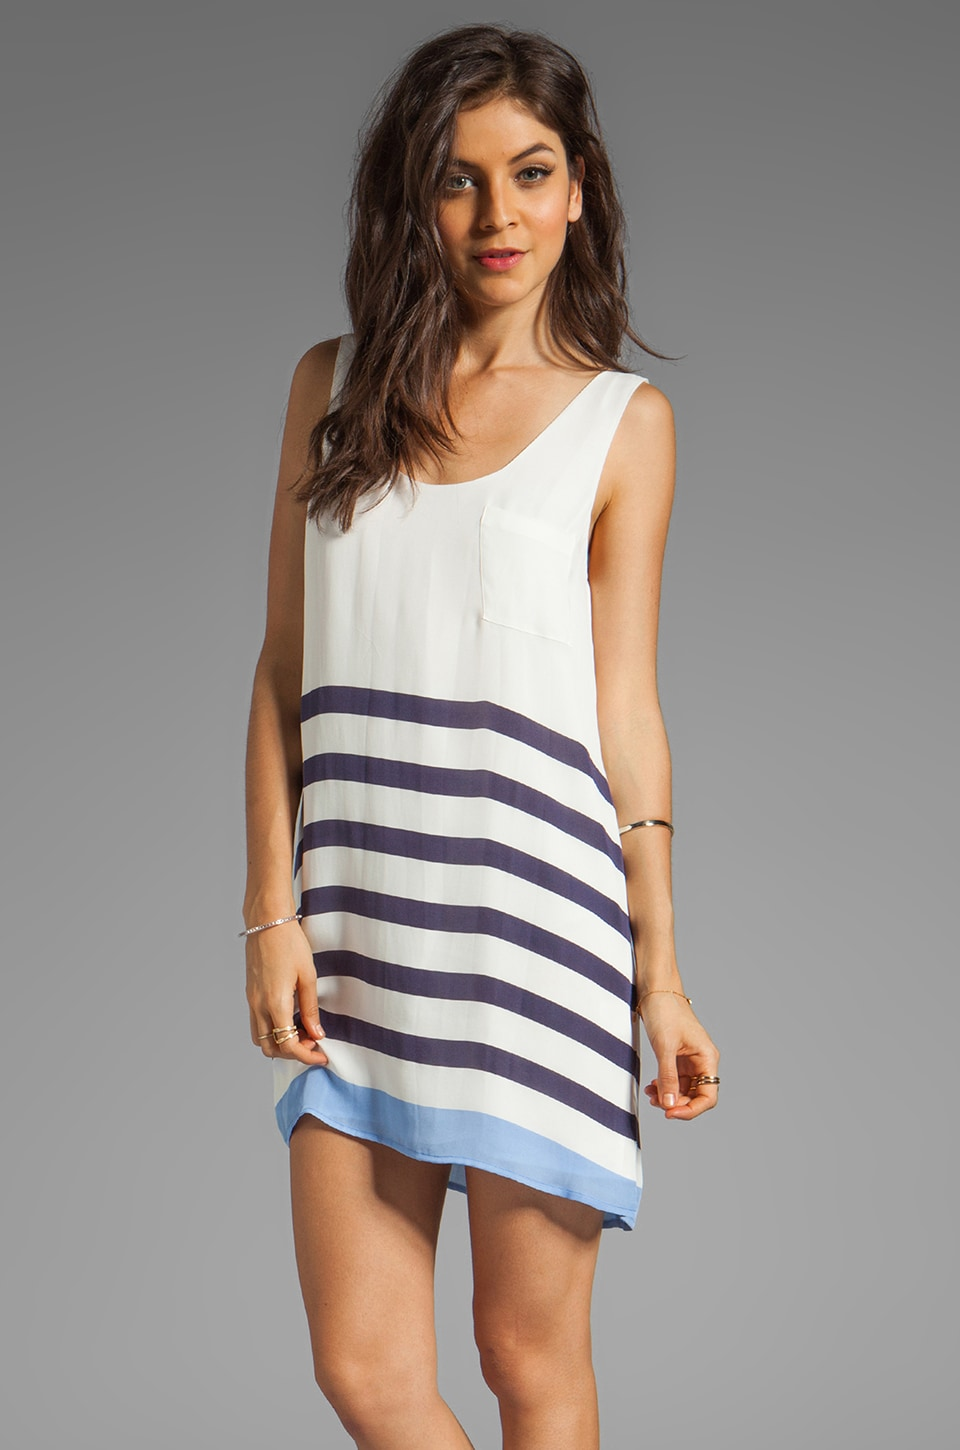 Joie Dawna Stripe Print Dress in Blue Violet